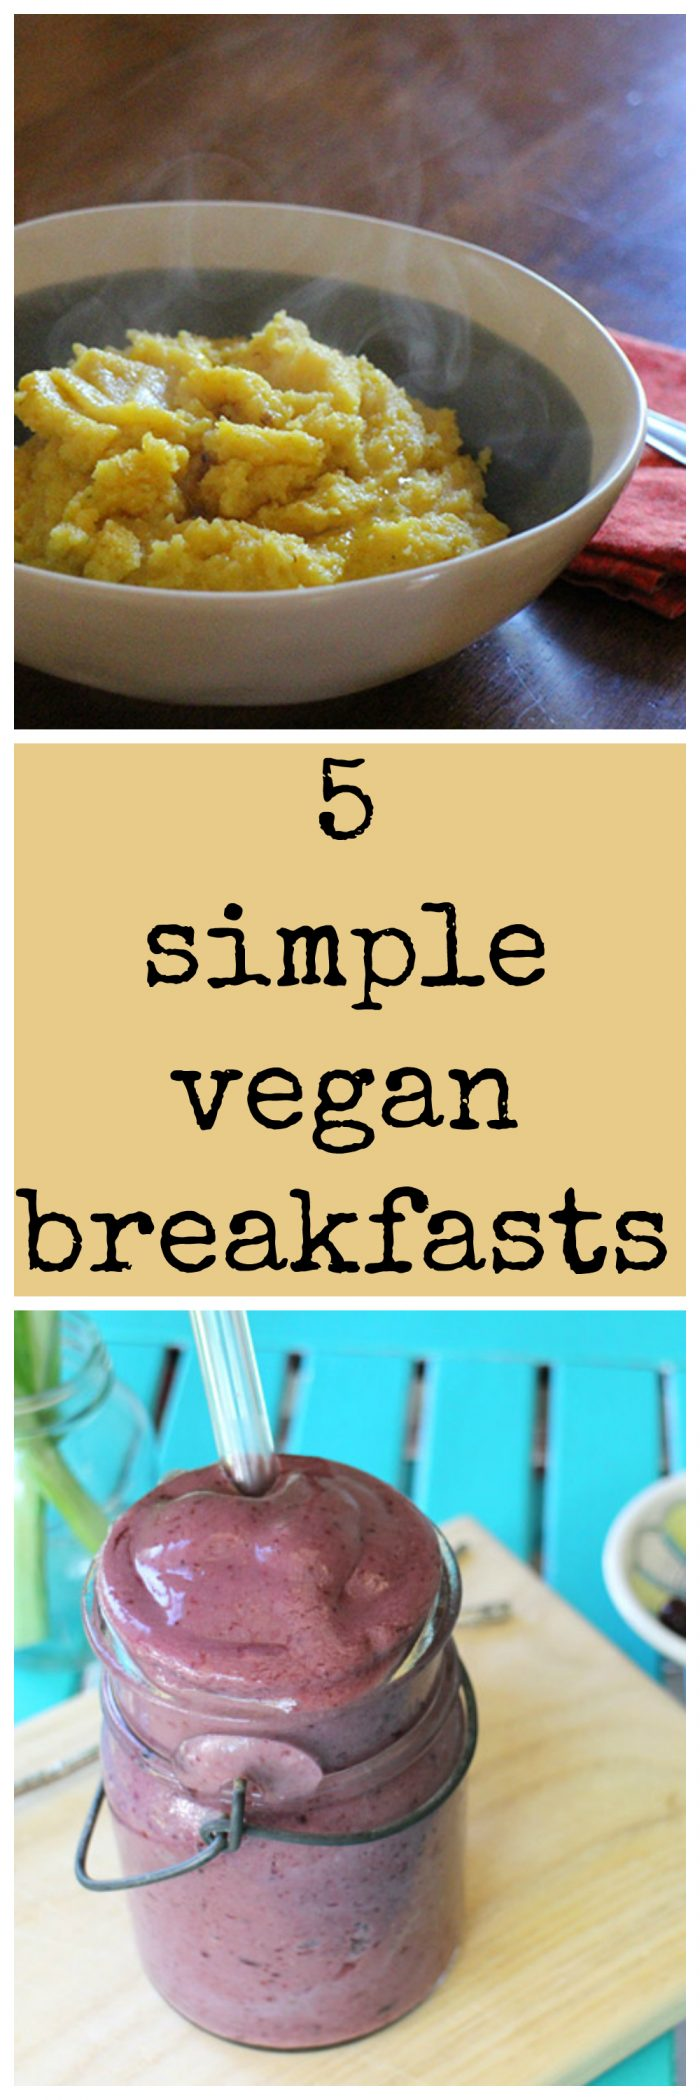 5 simple vegan breakfasts to start your day on the right foot | cadryskitchen.com